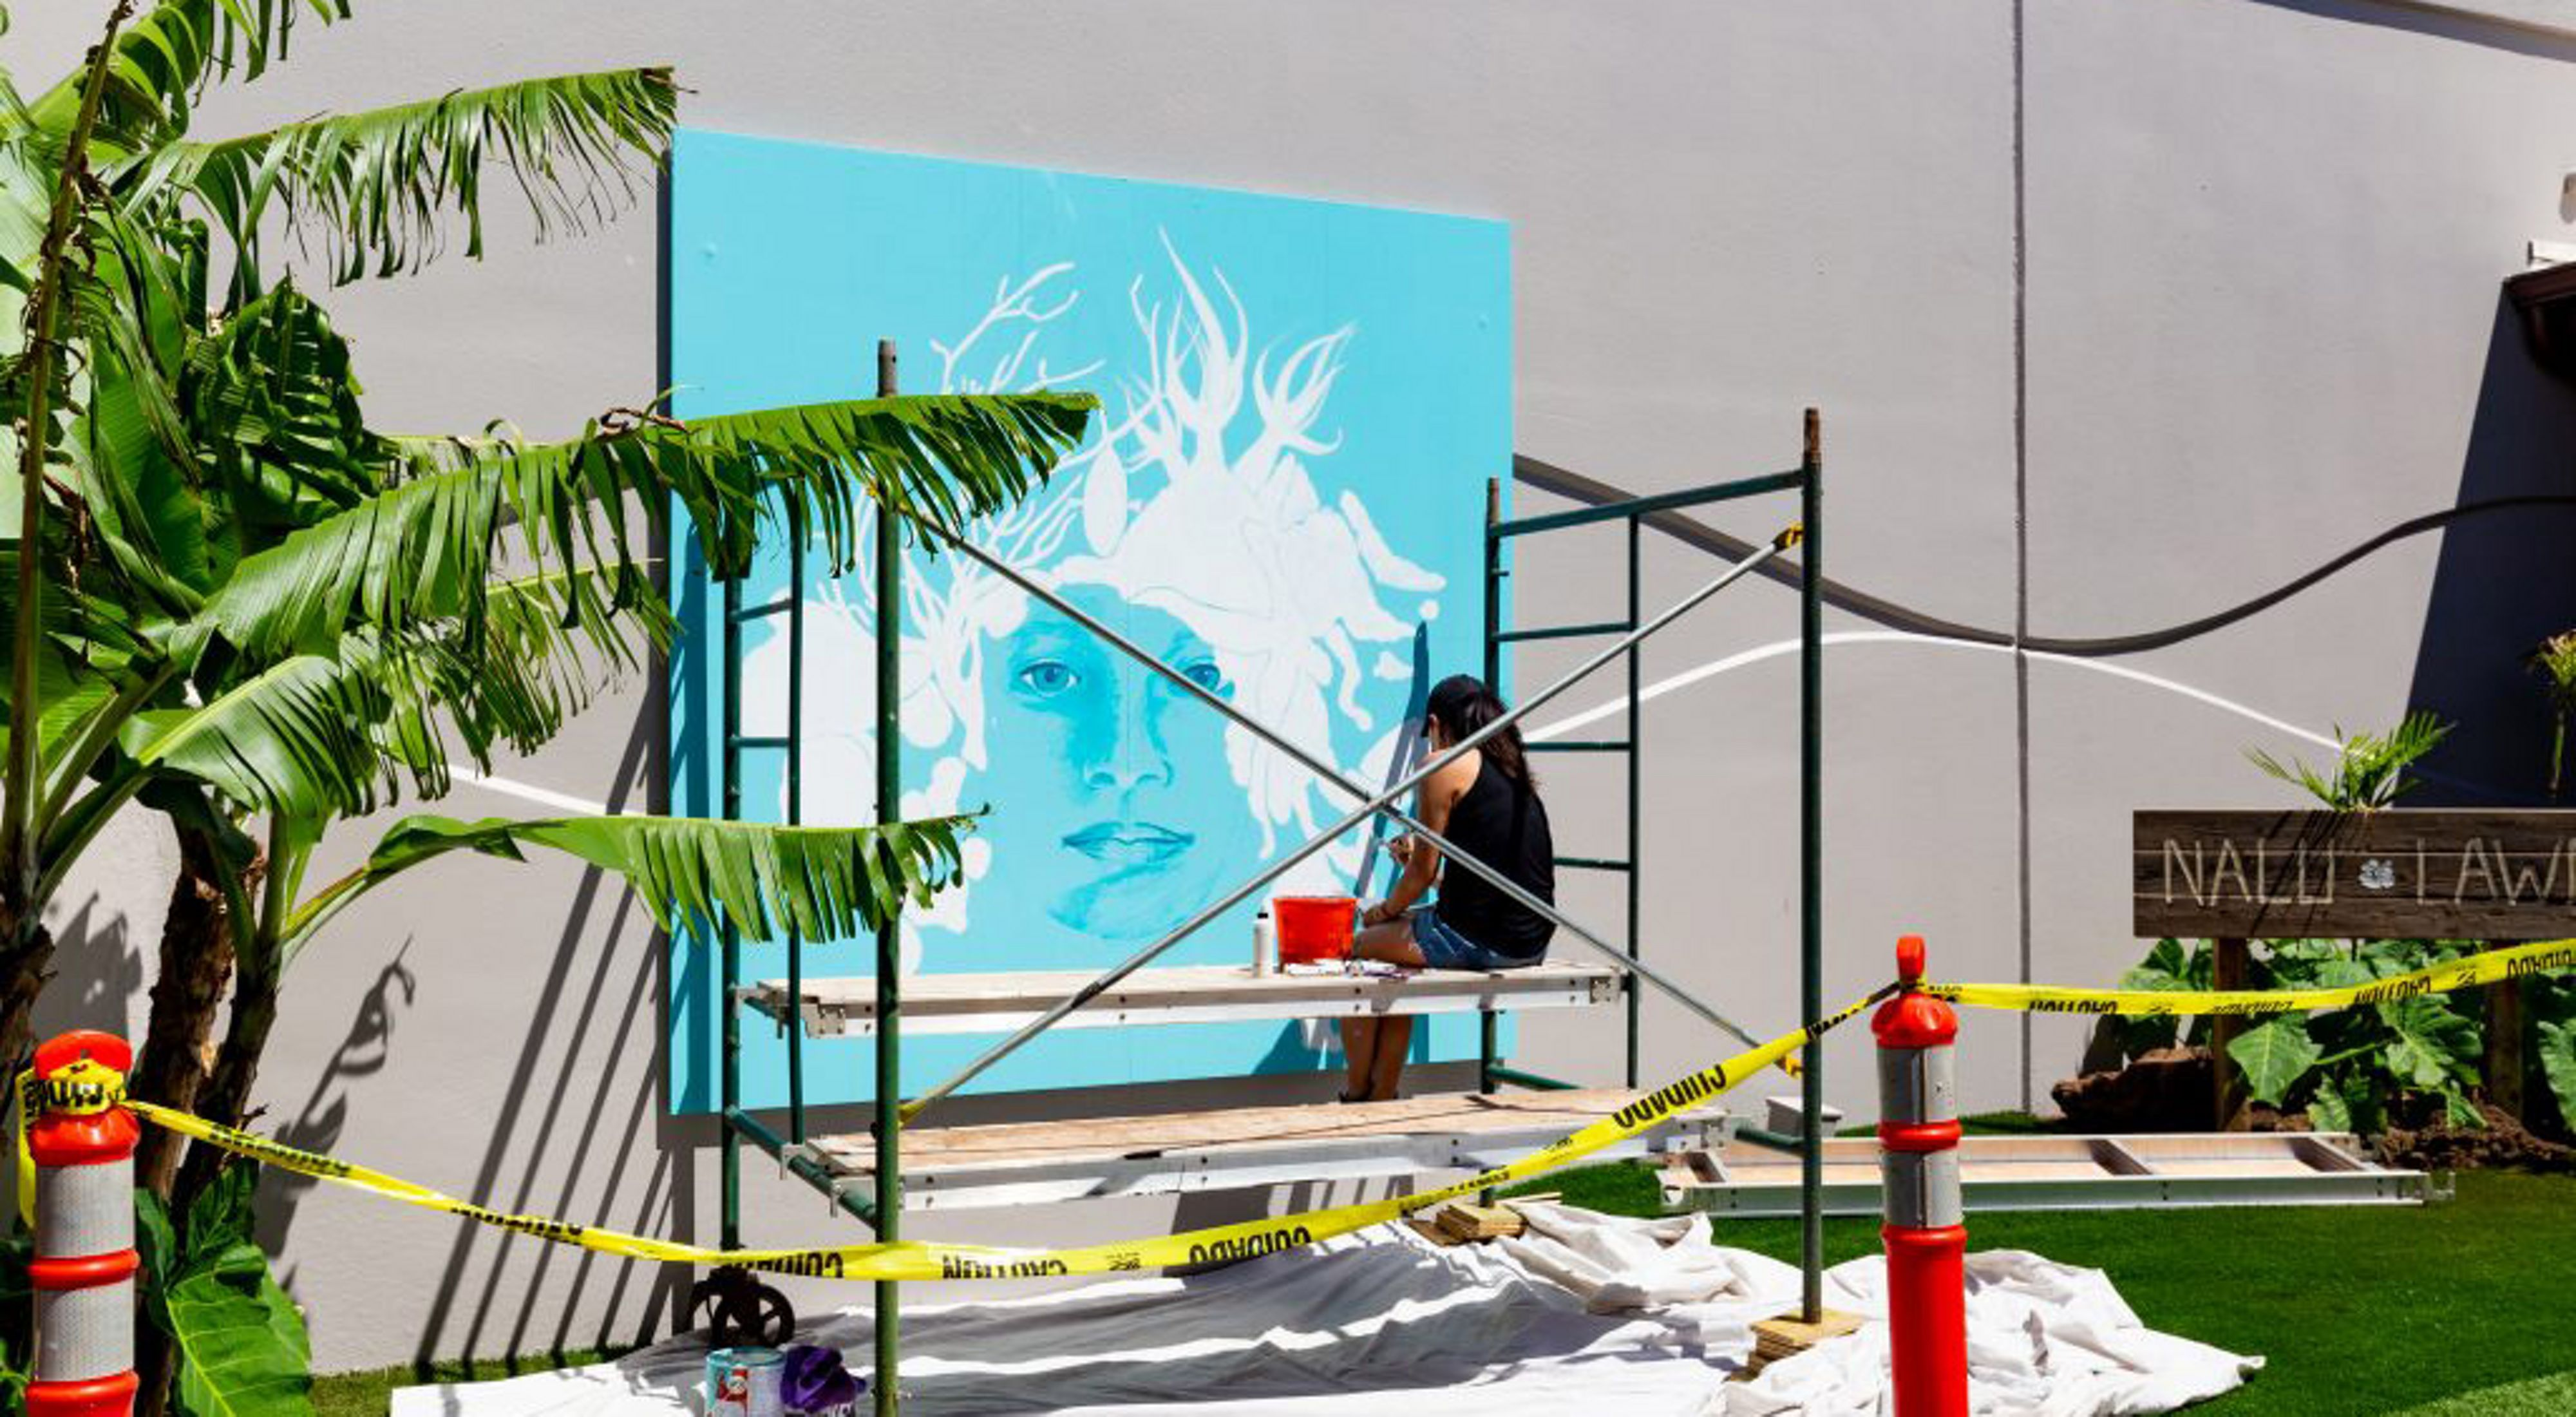 An artist sits on scaffolding, painting a large mural depicting a woman with marine creatures for hair on a bright turquoise background.